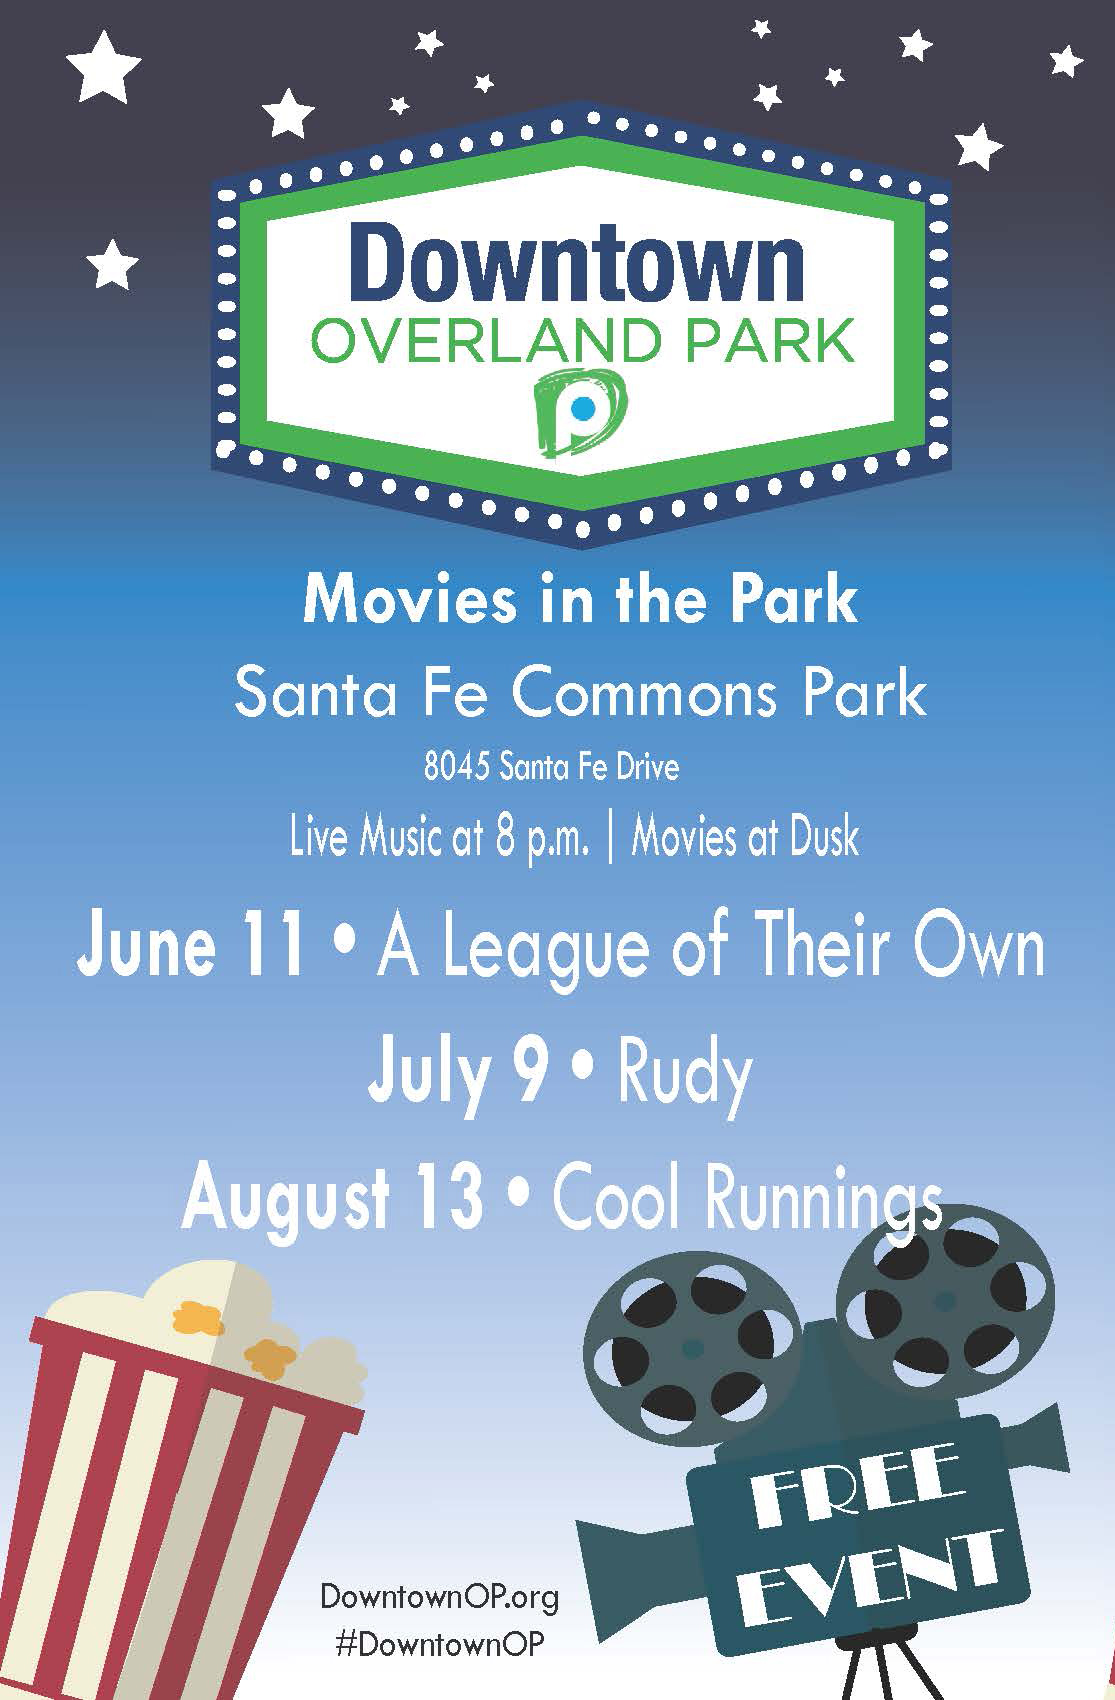 MOVIES IN THE PARK - AD